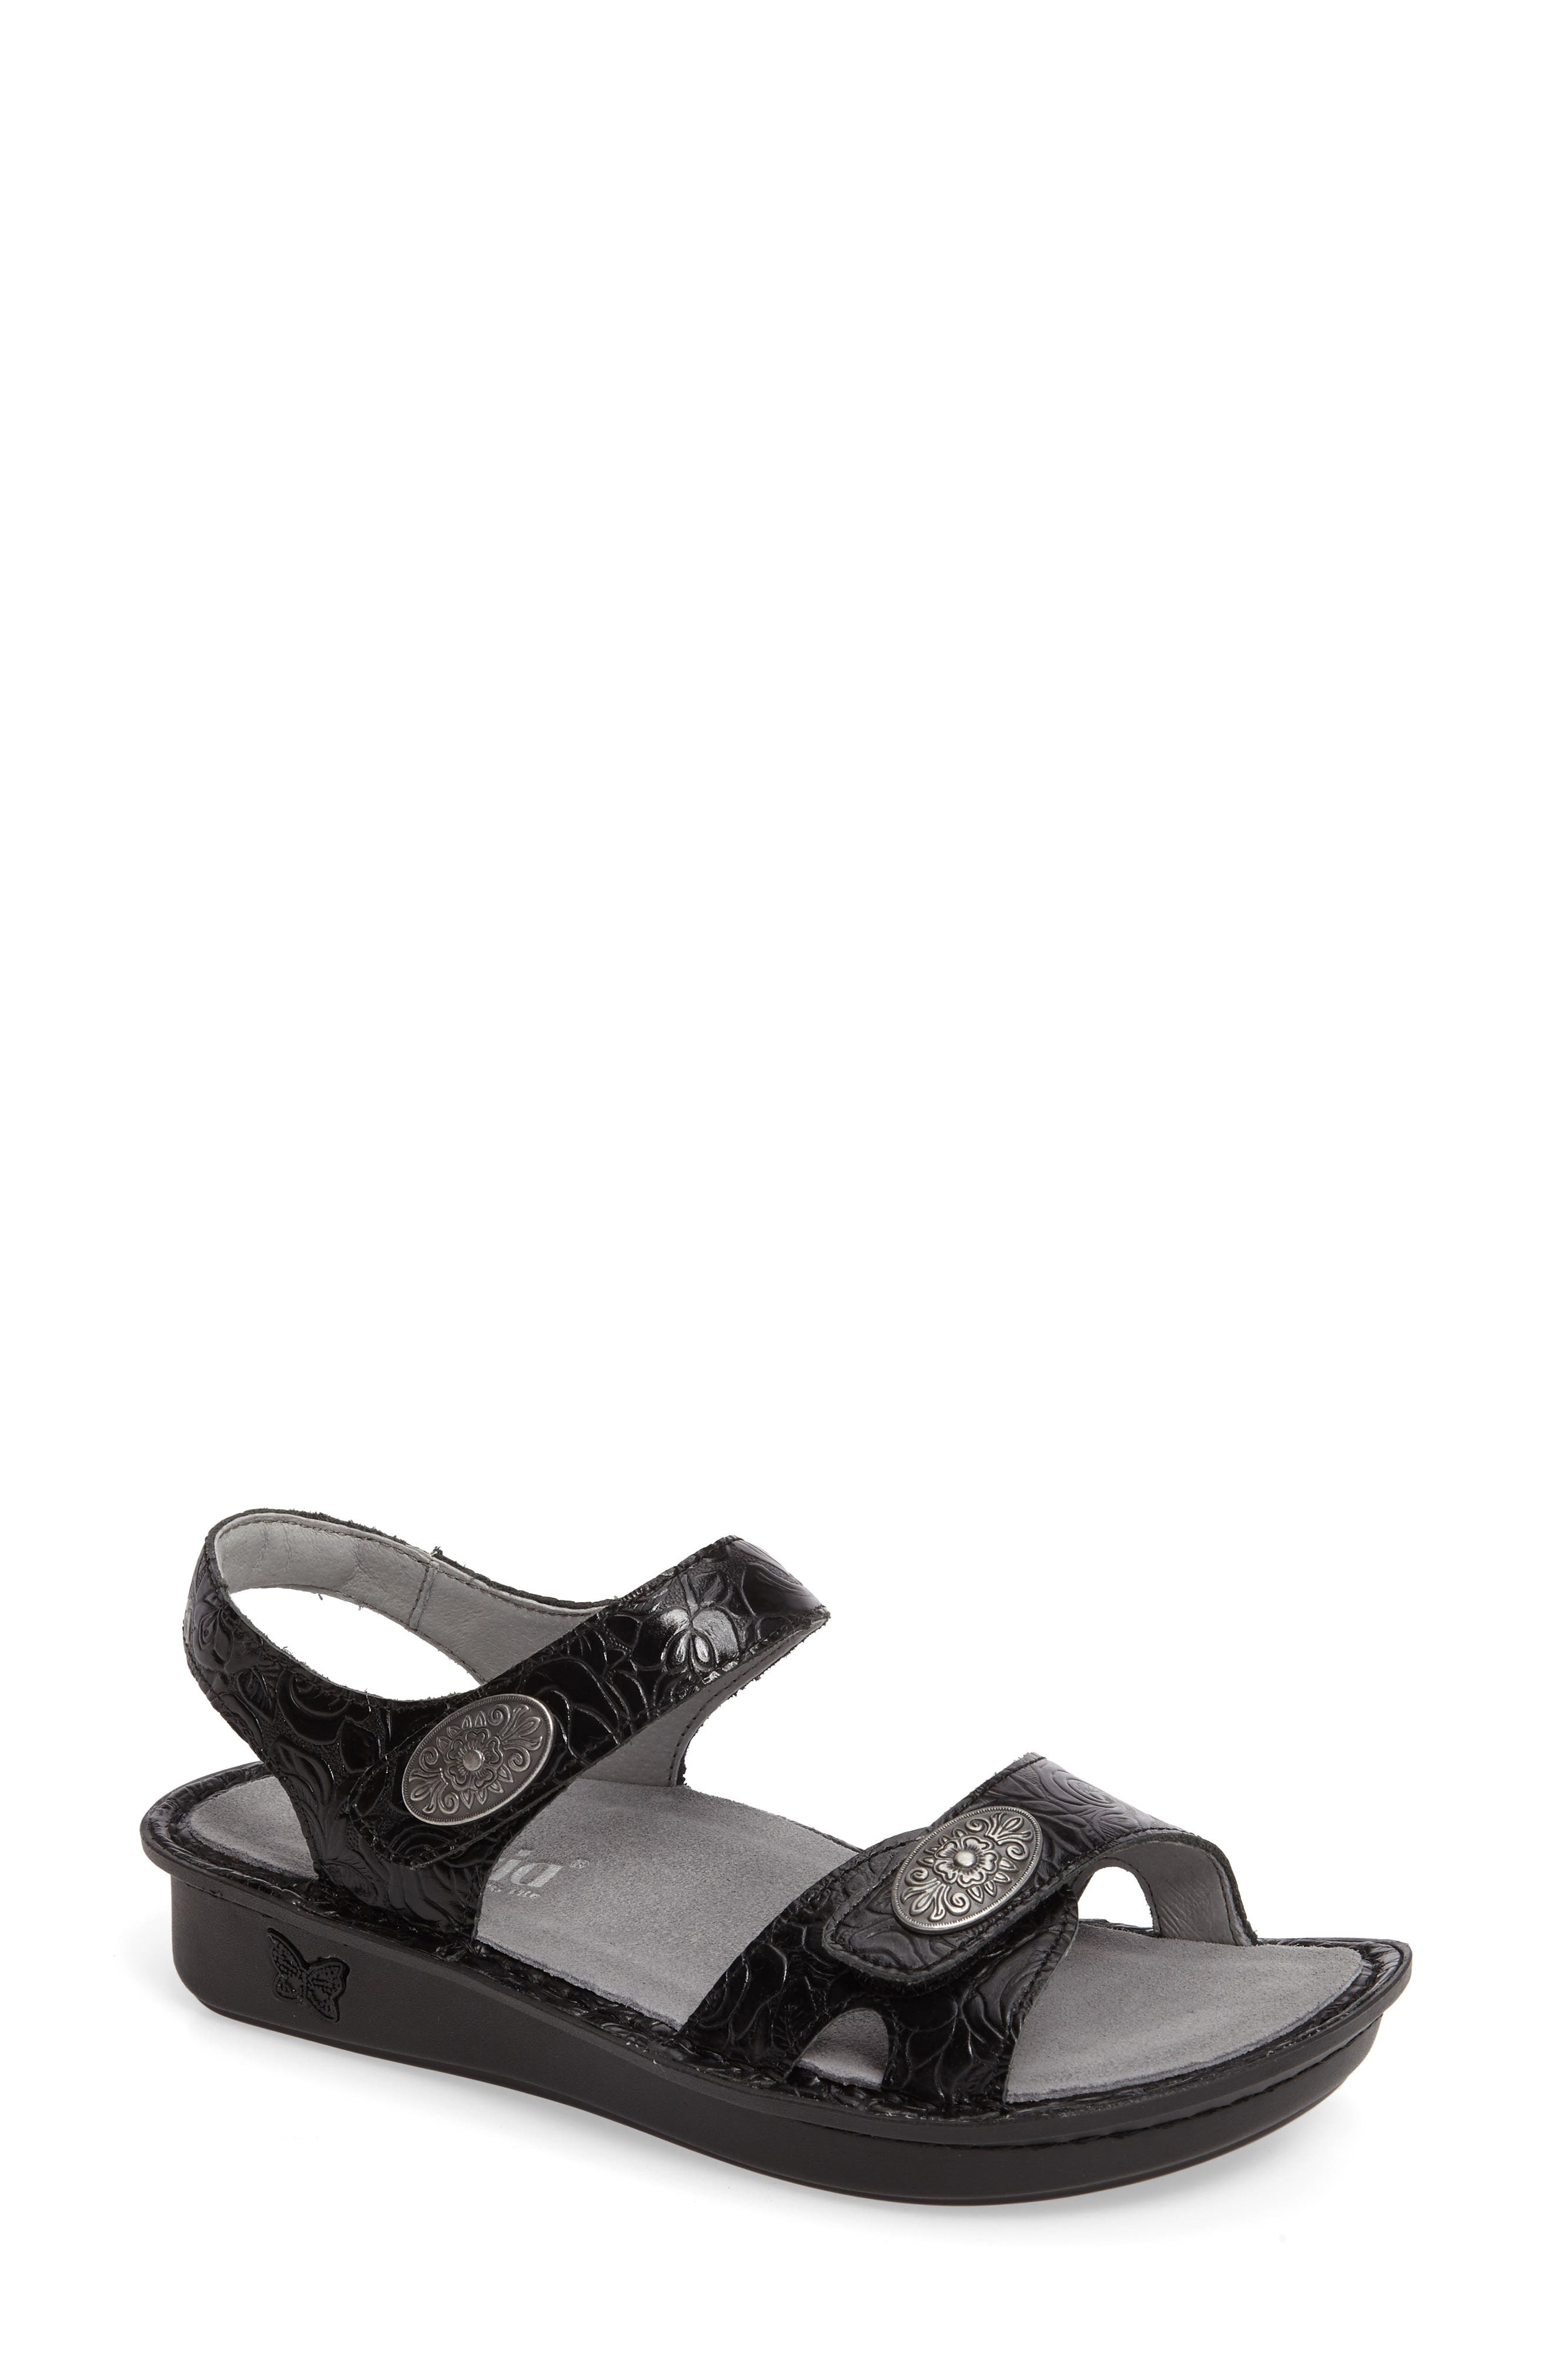 Vienna Sandal,                             Main thumbnail 1, color,                             Cowgirl Tar Leather